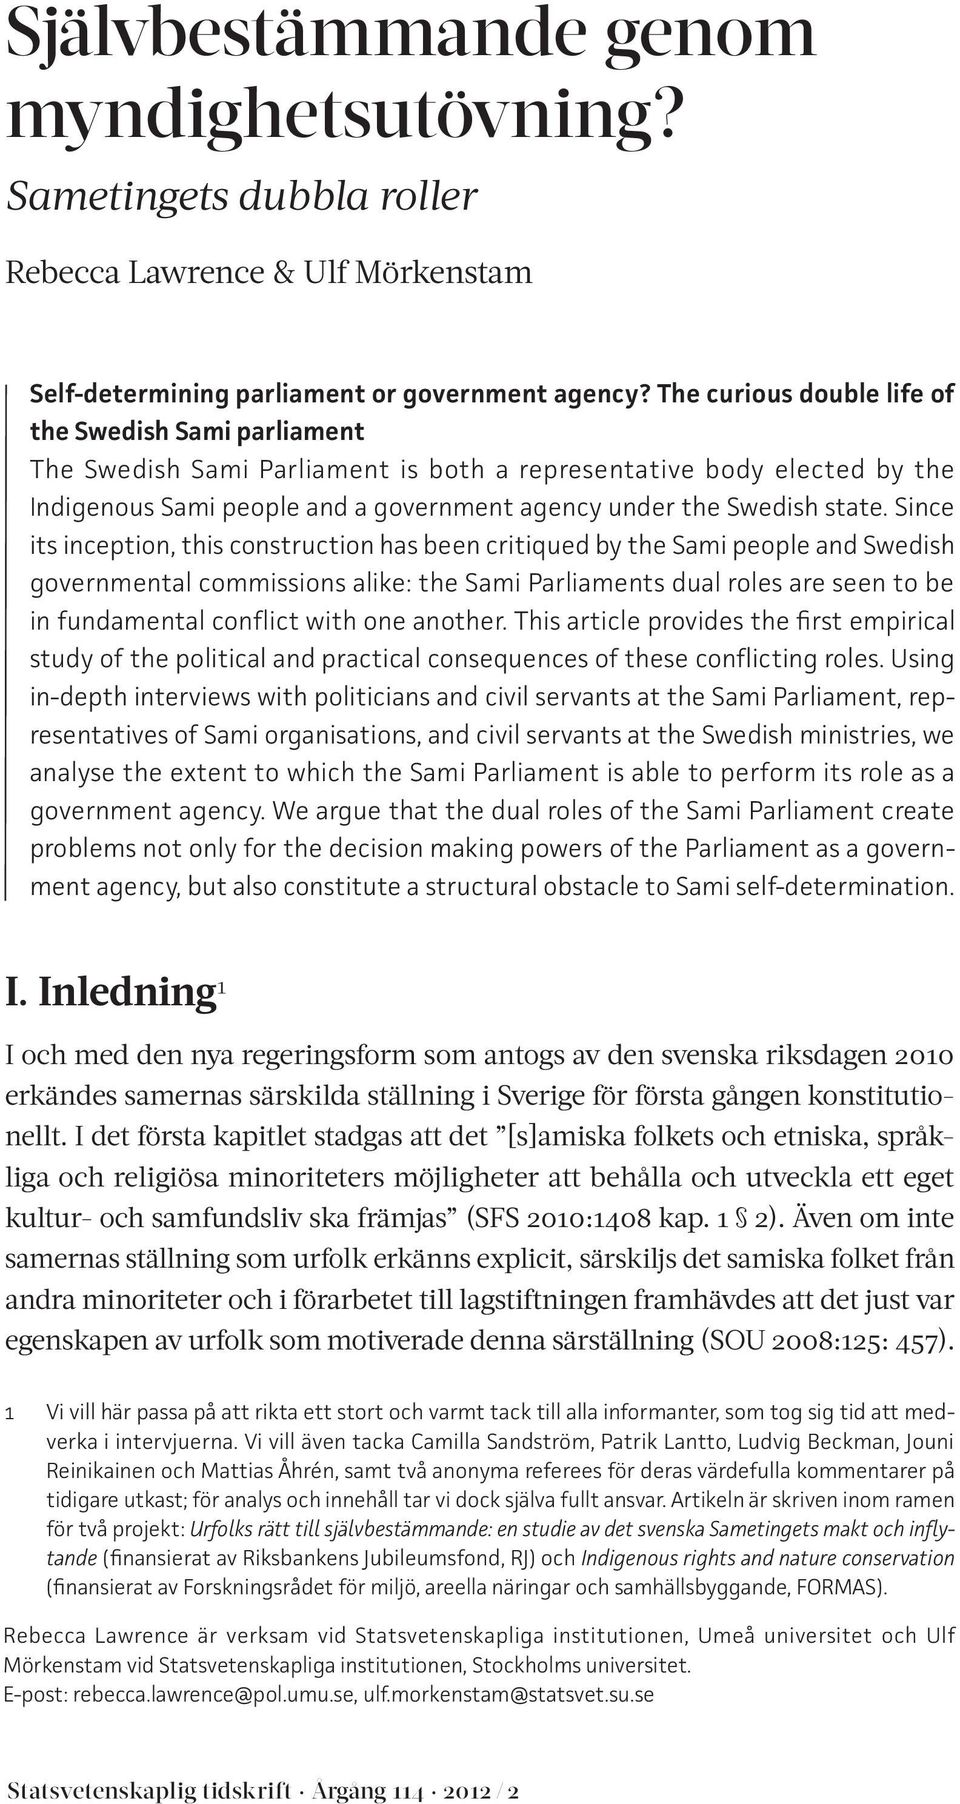 Since its inception, this construction has been critiqued by the Sami people and Swedish governmental commissions alike: the Sami Parliaments dual roles are seen to be in fundamental conflict with